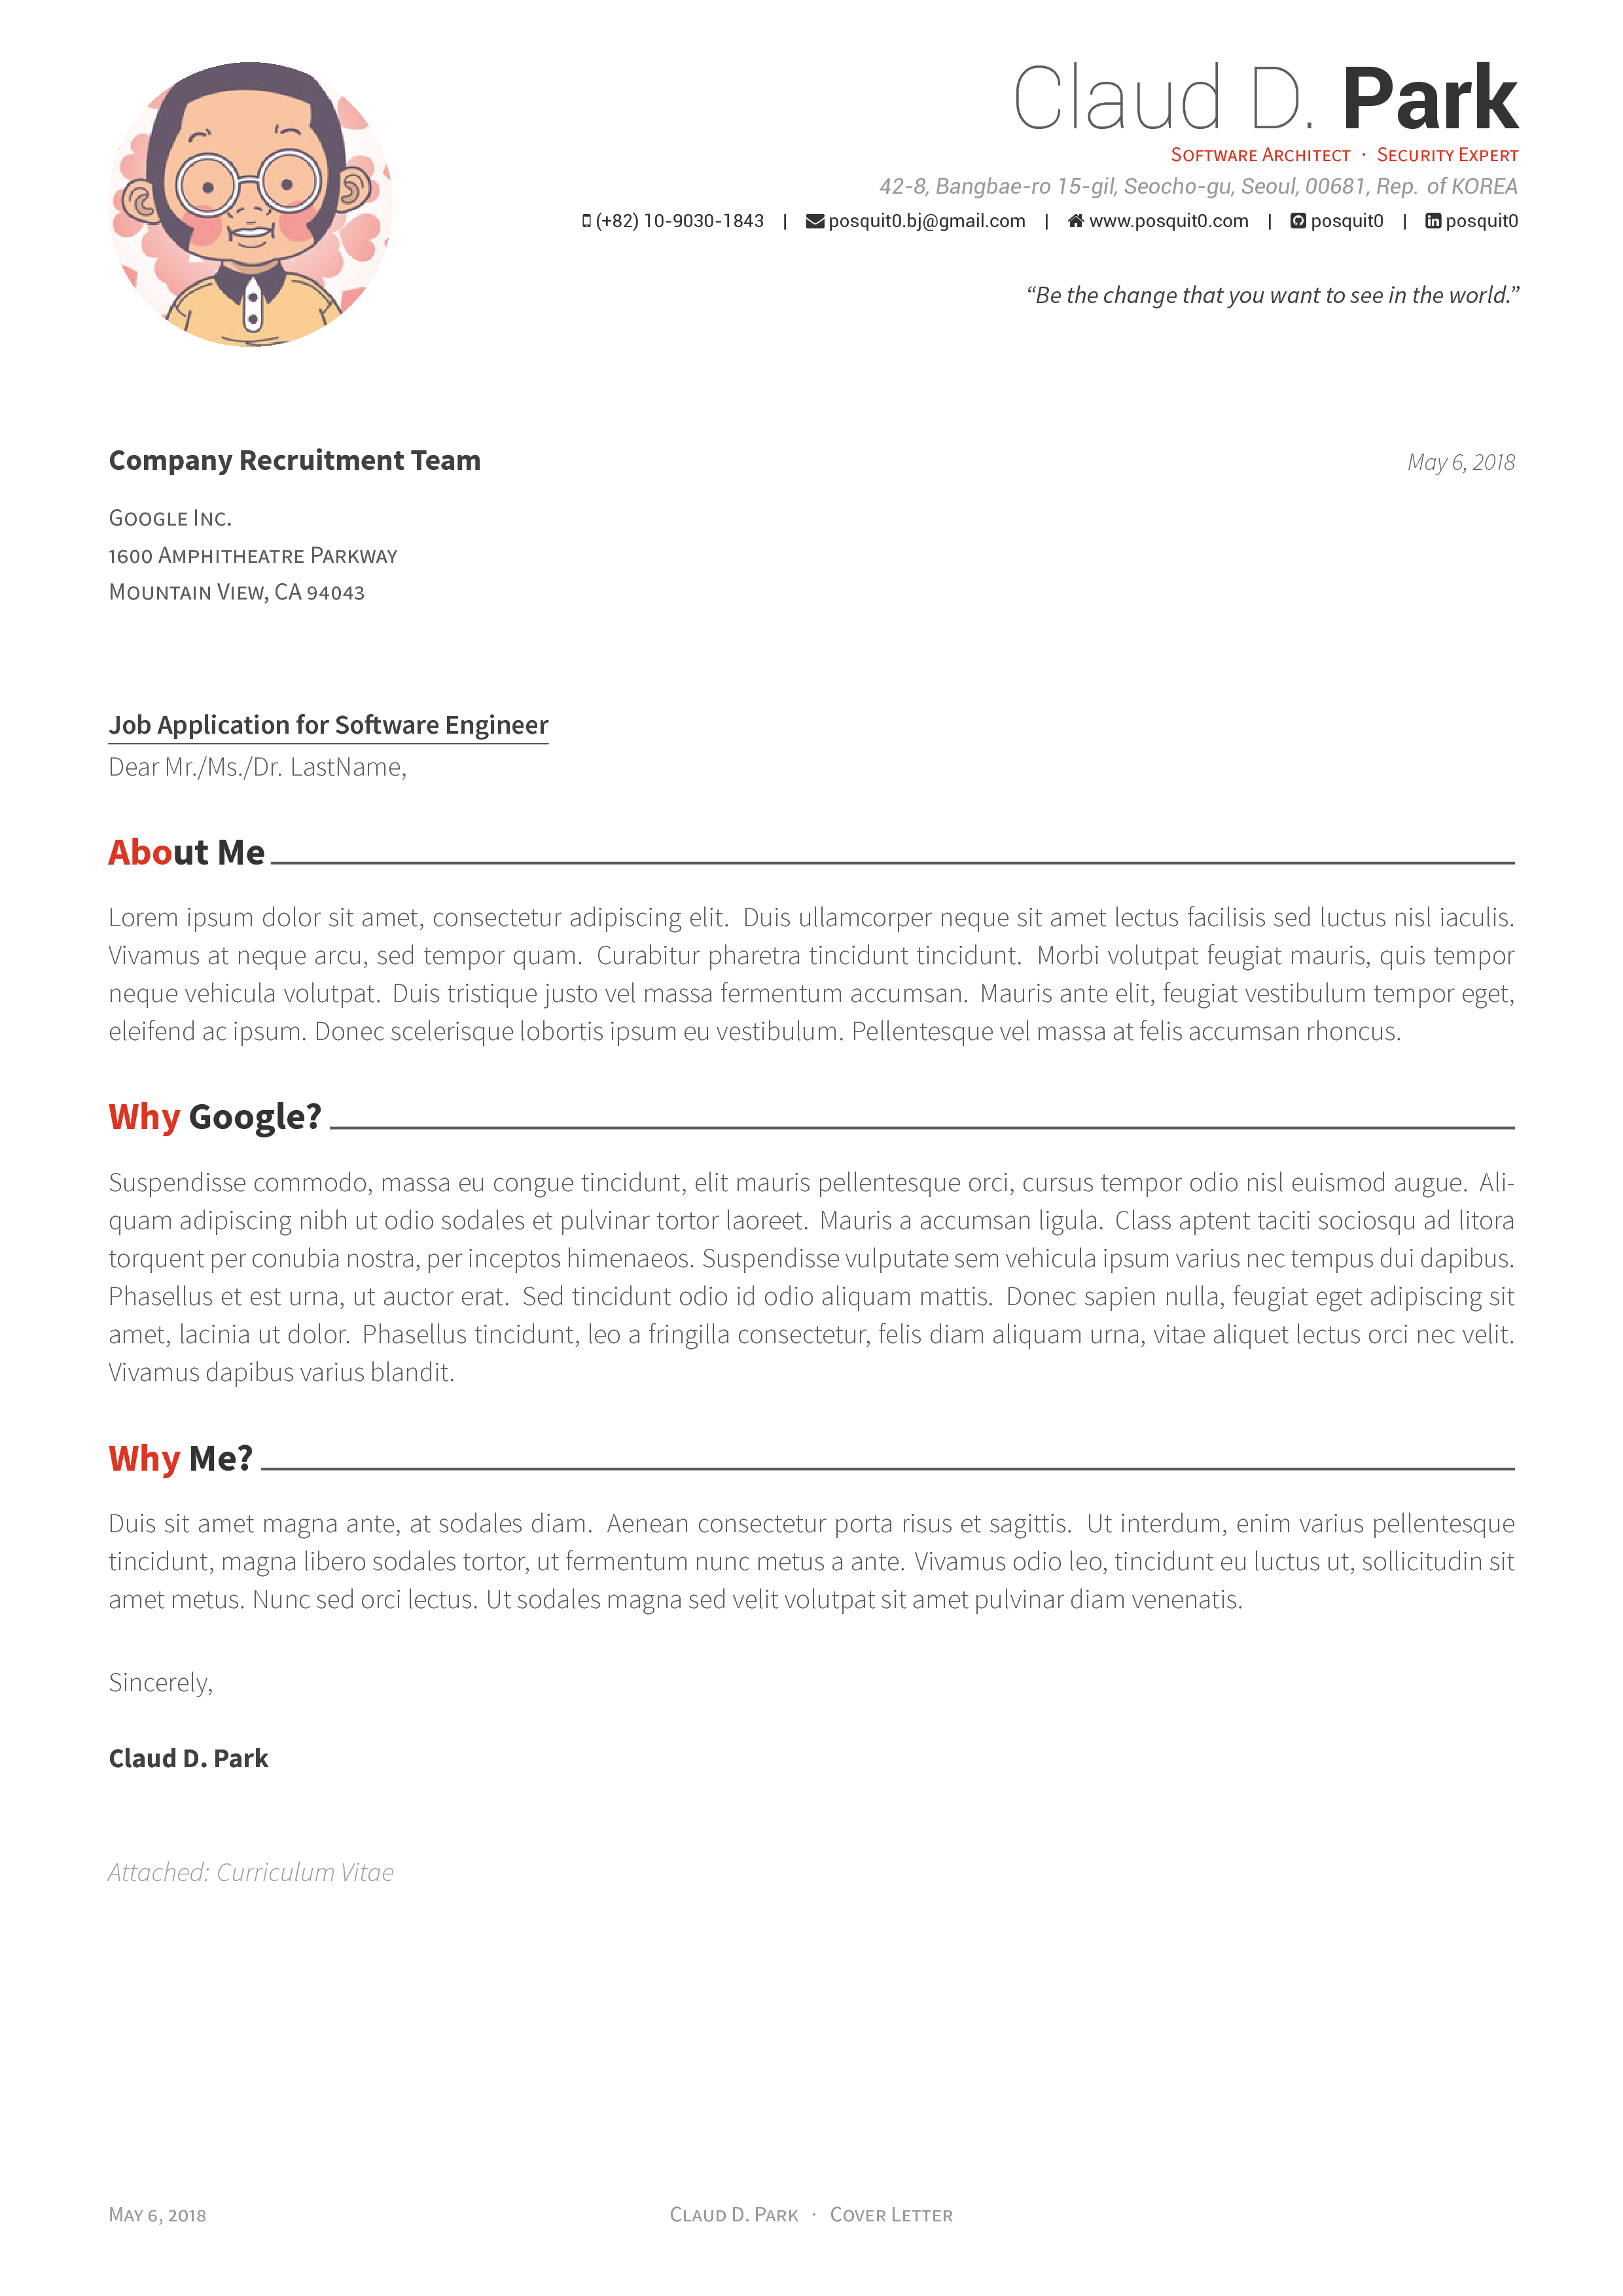 cover lettertraditional cover letterawesome - Format For Resume Cover Letter